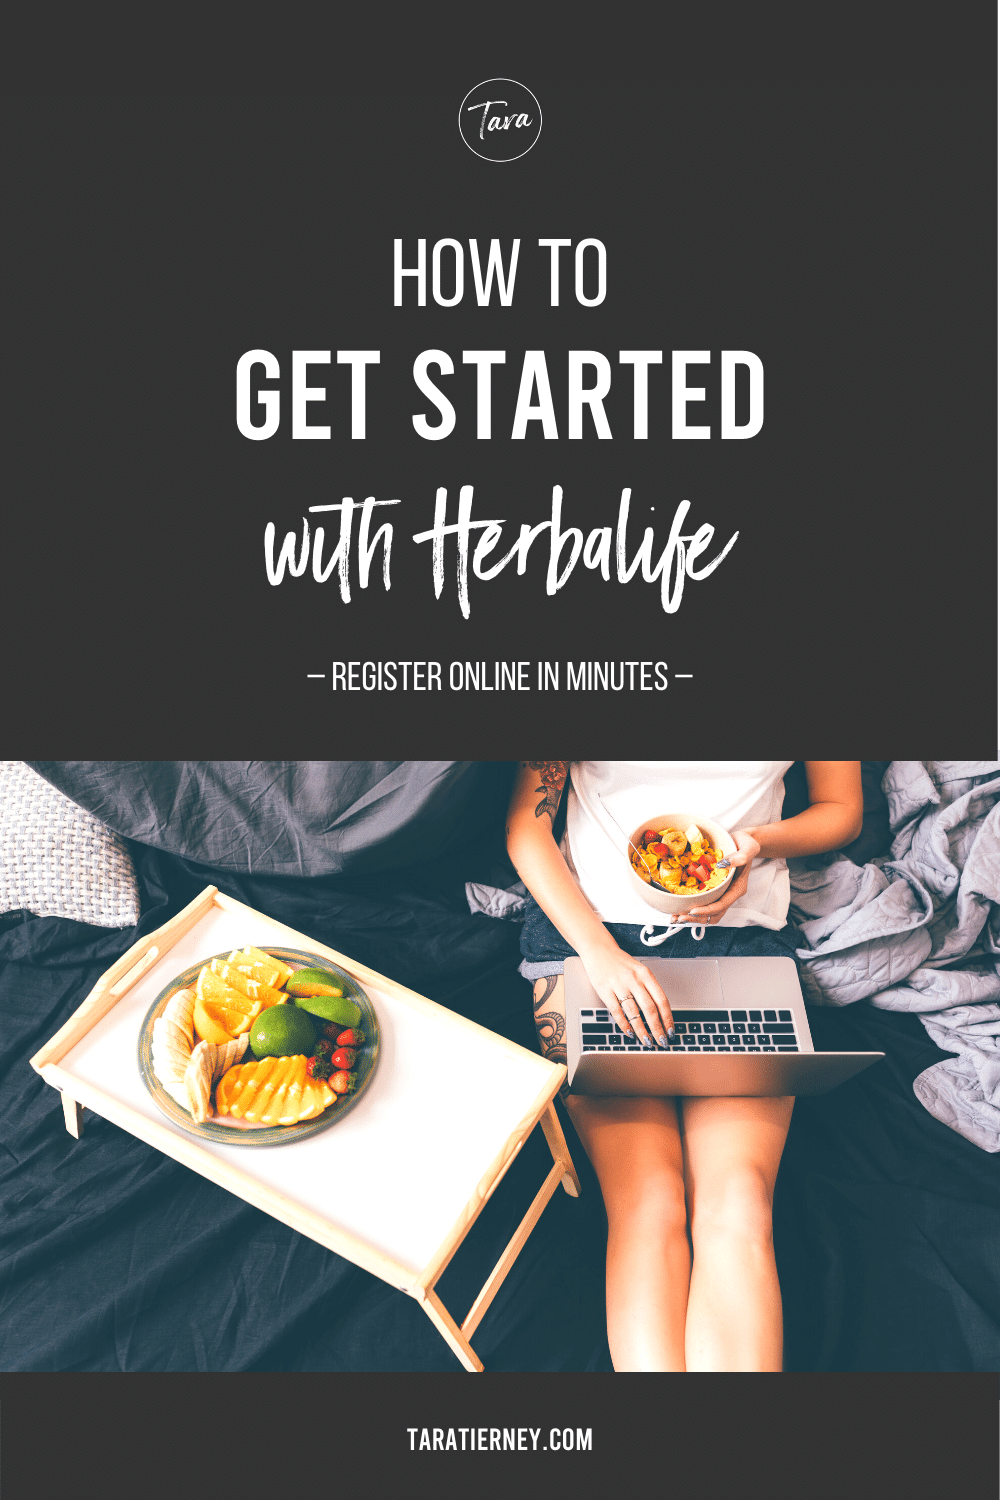 How to Get Started with Herbalife | Herbalife Registration Instructions